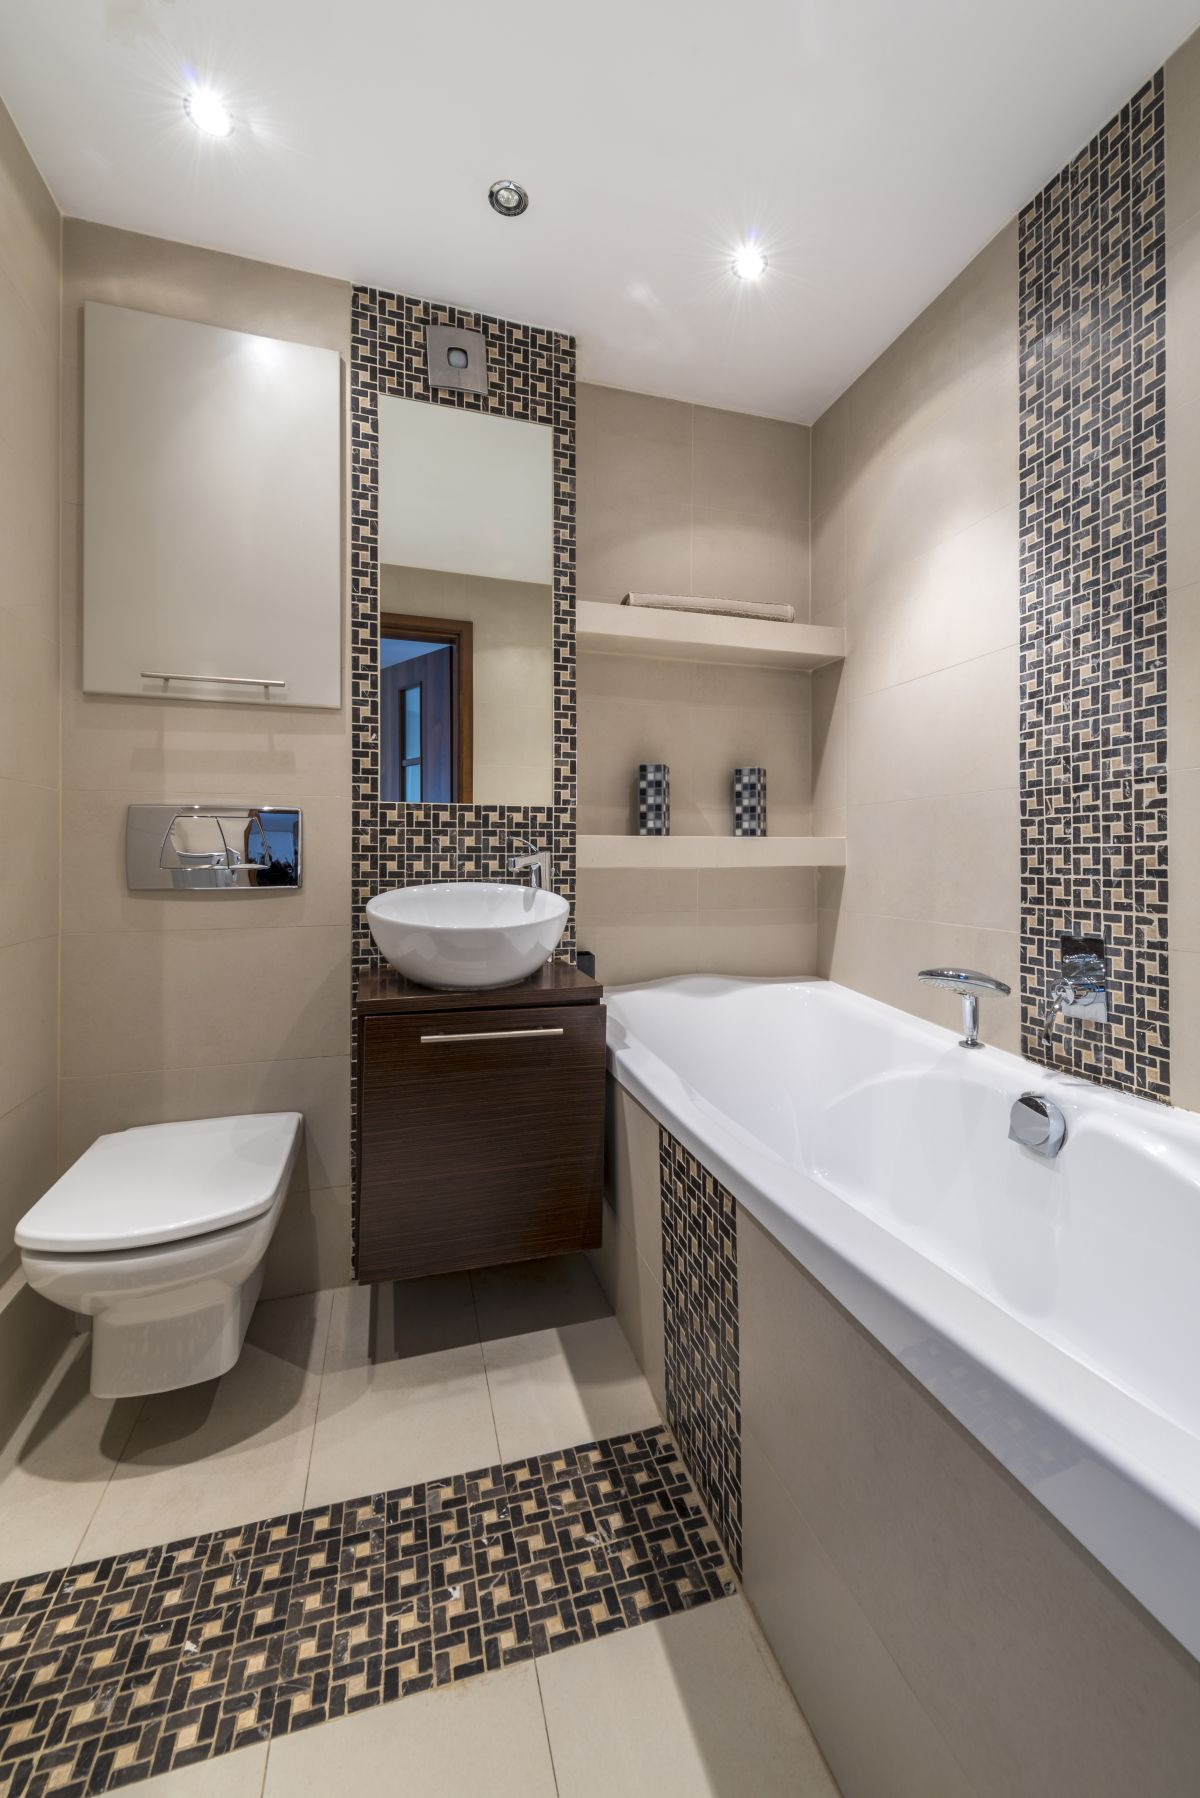 Size matters bathroom renovation costs for your size bath for Small bathroom renovations